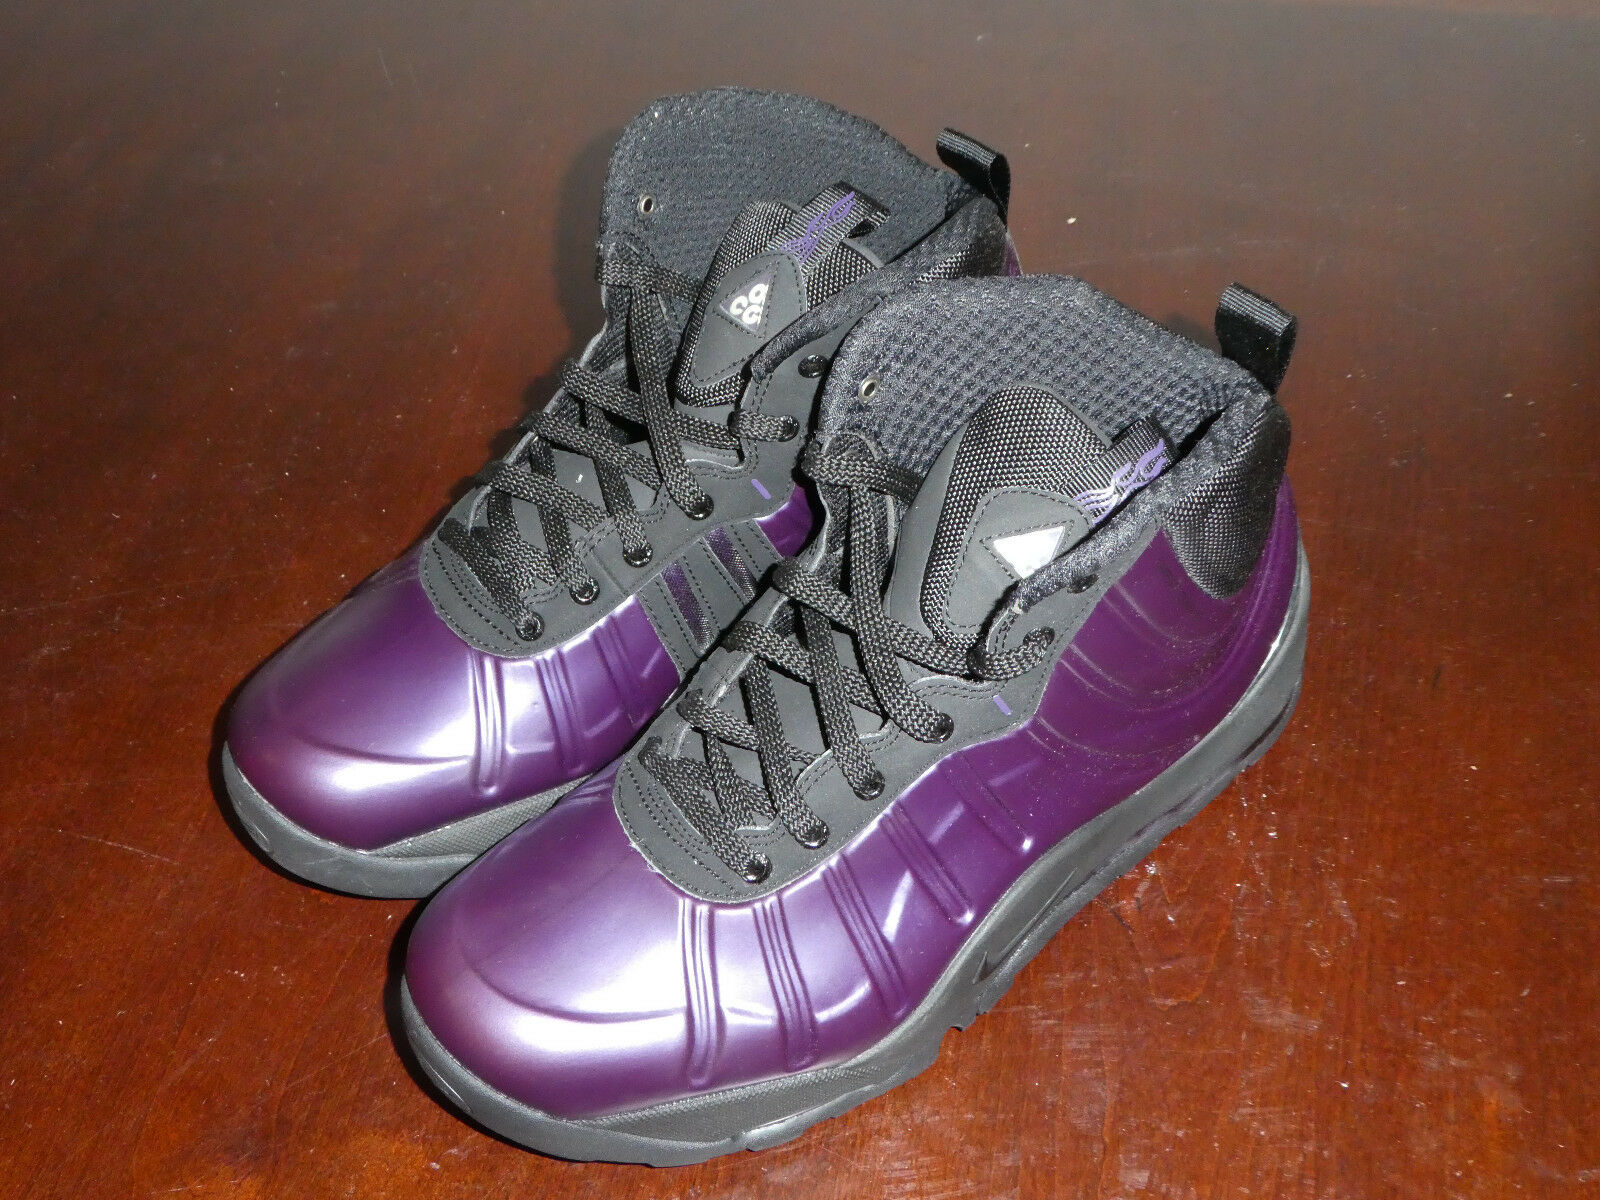 new arrival 634d2 26949 Nike Air Bakin Posite boots shoes 508 purple new Mens 618056  oslwet3246-Athletic Shoes